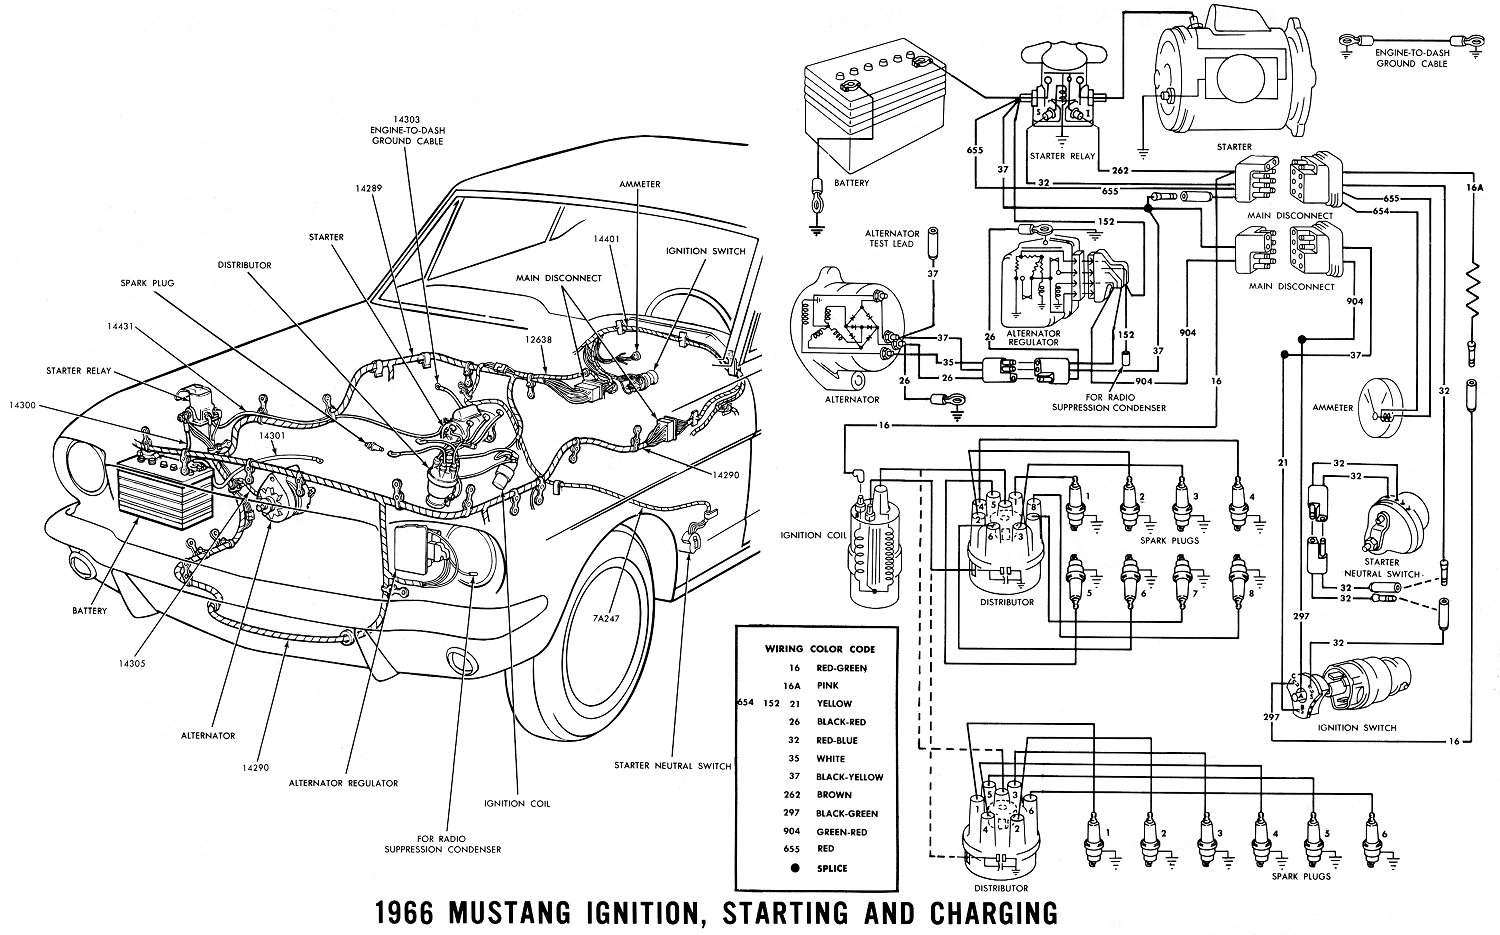 66ignit 1966 mustang wiring diagrams average joe restoration 1967 mustang ignition wiring diagram at soozxer.org